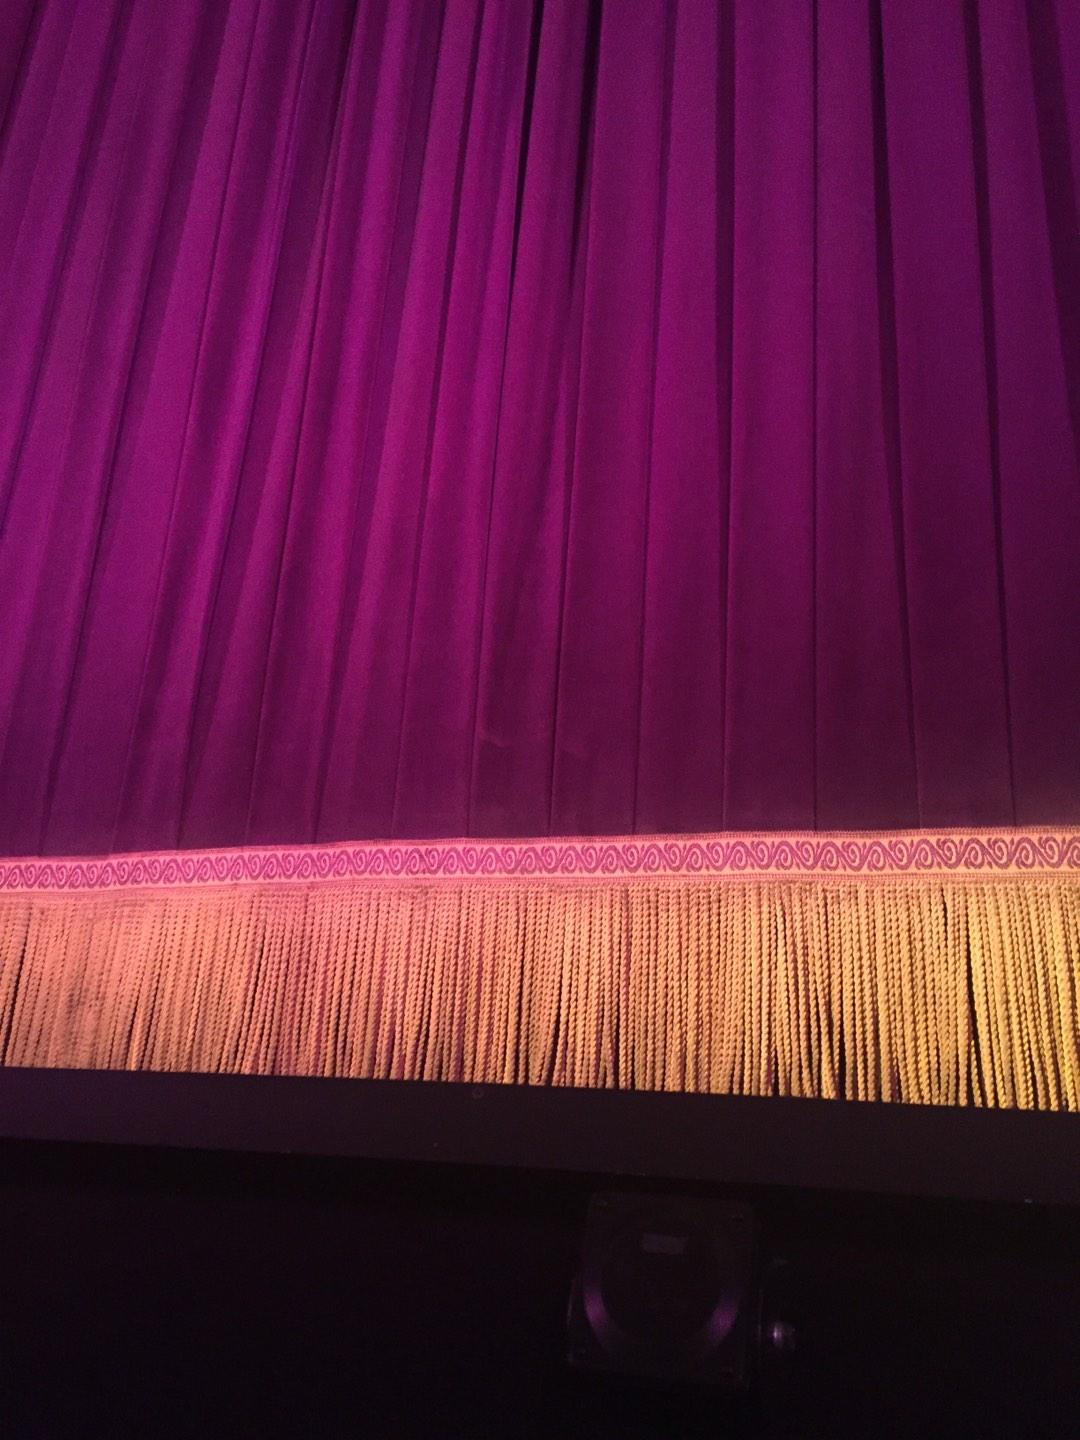 Lyceum Theatre (Broadway) Section Orchestra Row AA Seat 103